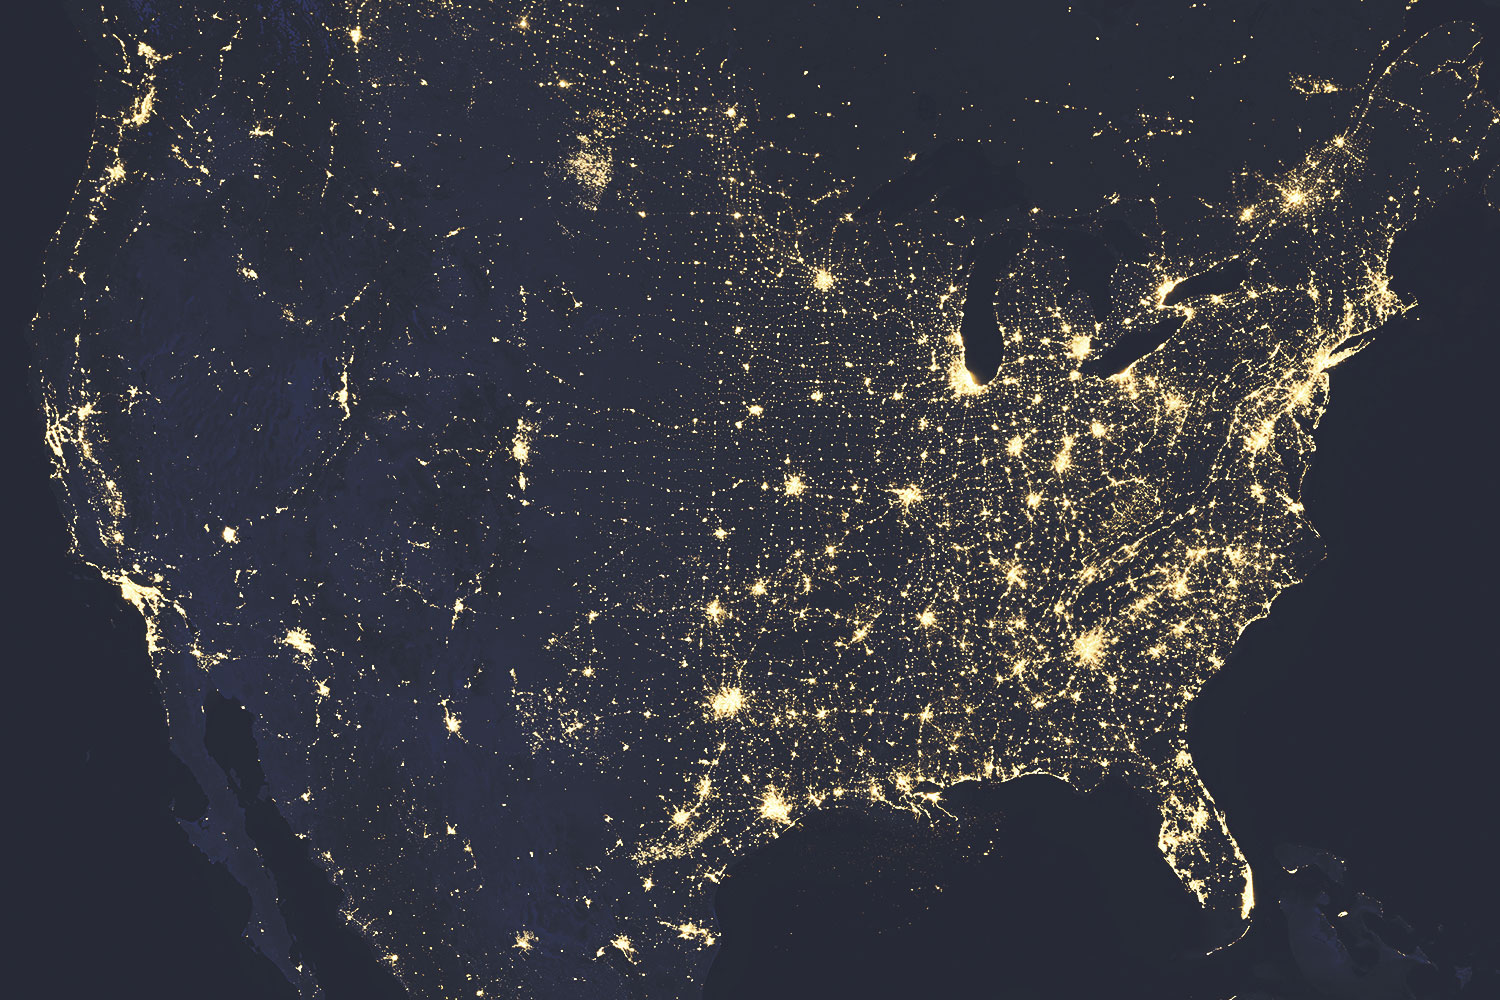 us_space_lights_landscape